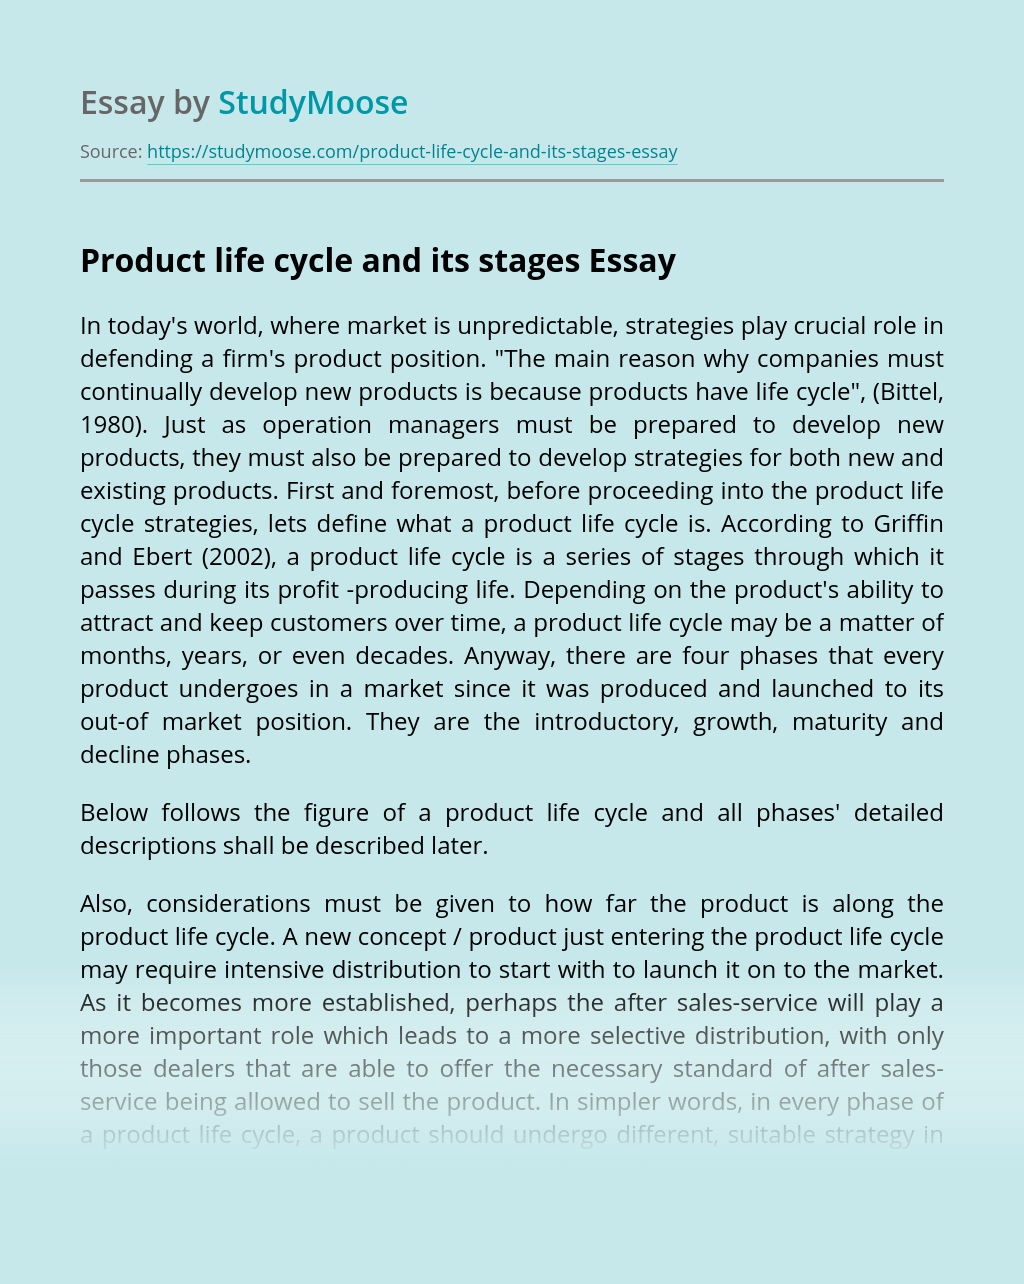 Product life cycle and its stages